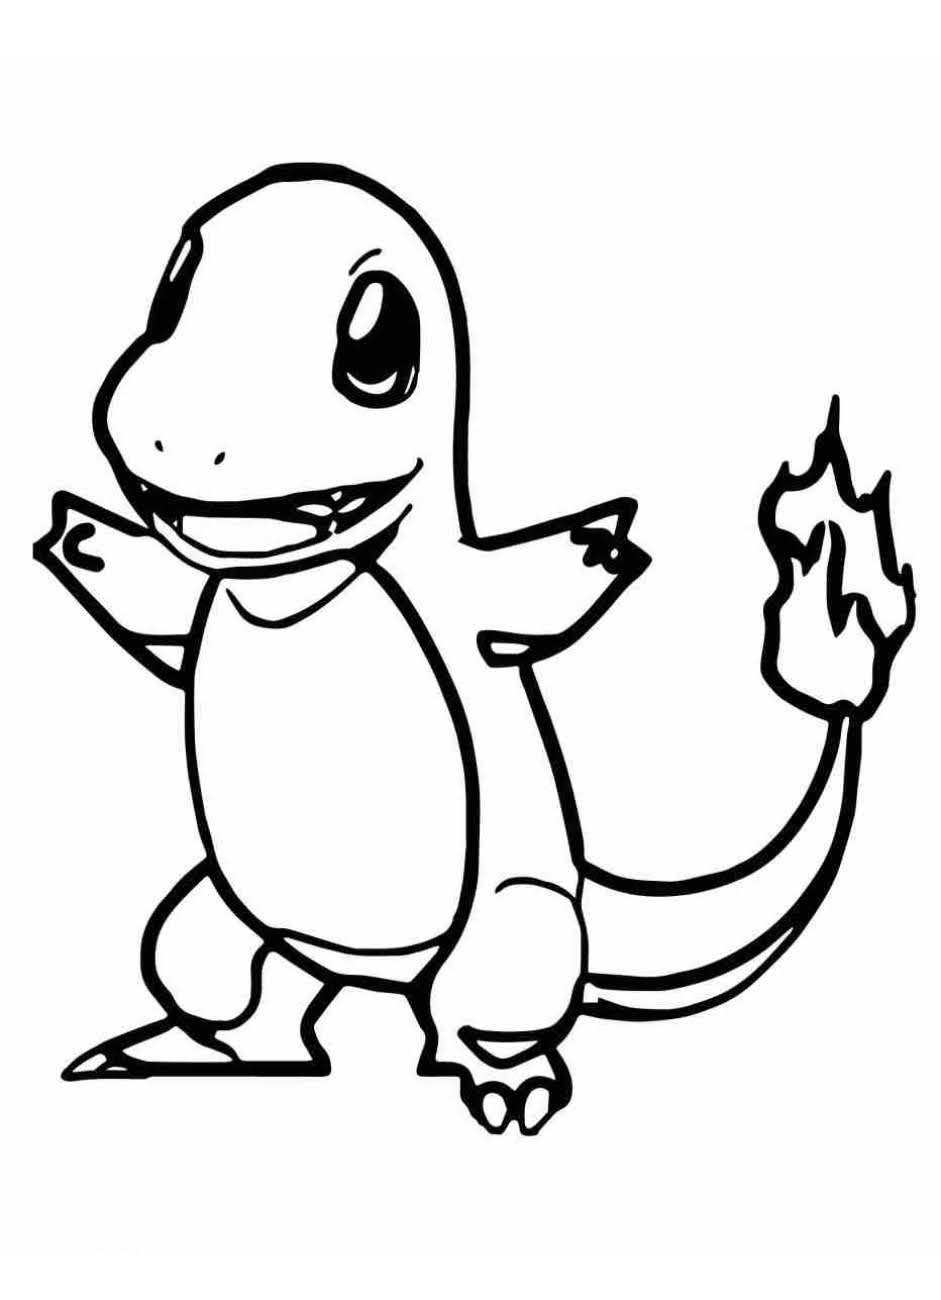 charmander colouring pages charmander coloring pages to download and print for free charmander colouring pages